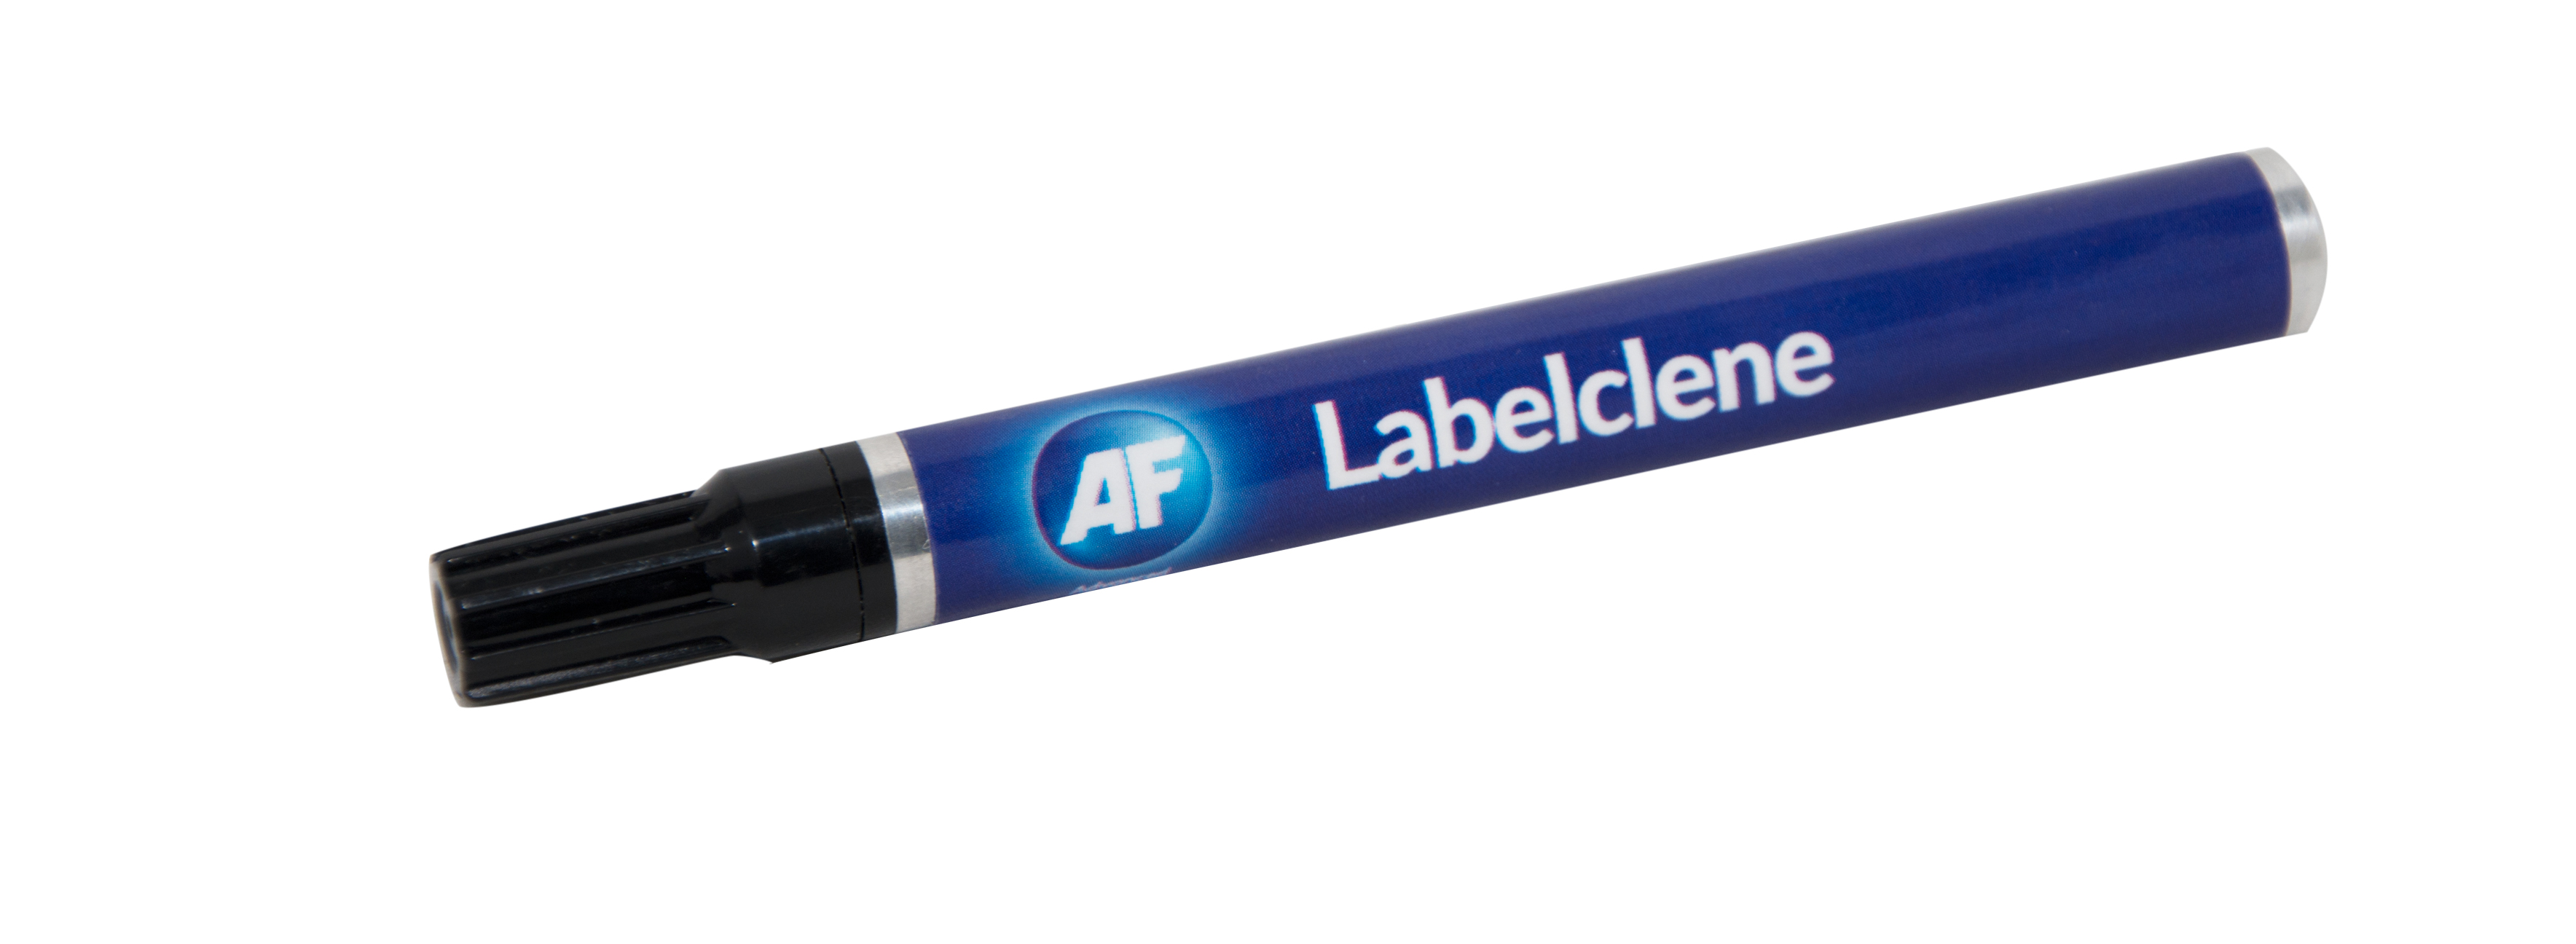 AF Labelclene Applicator Pen (12ml)